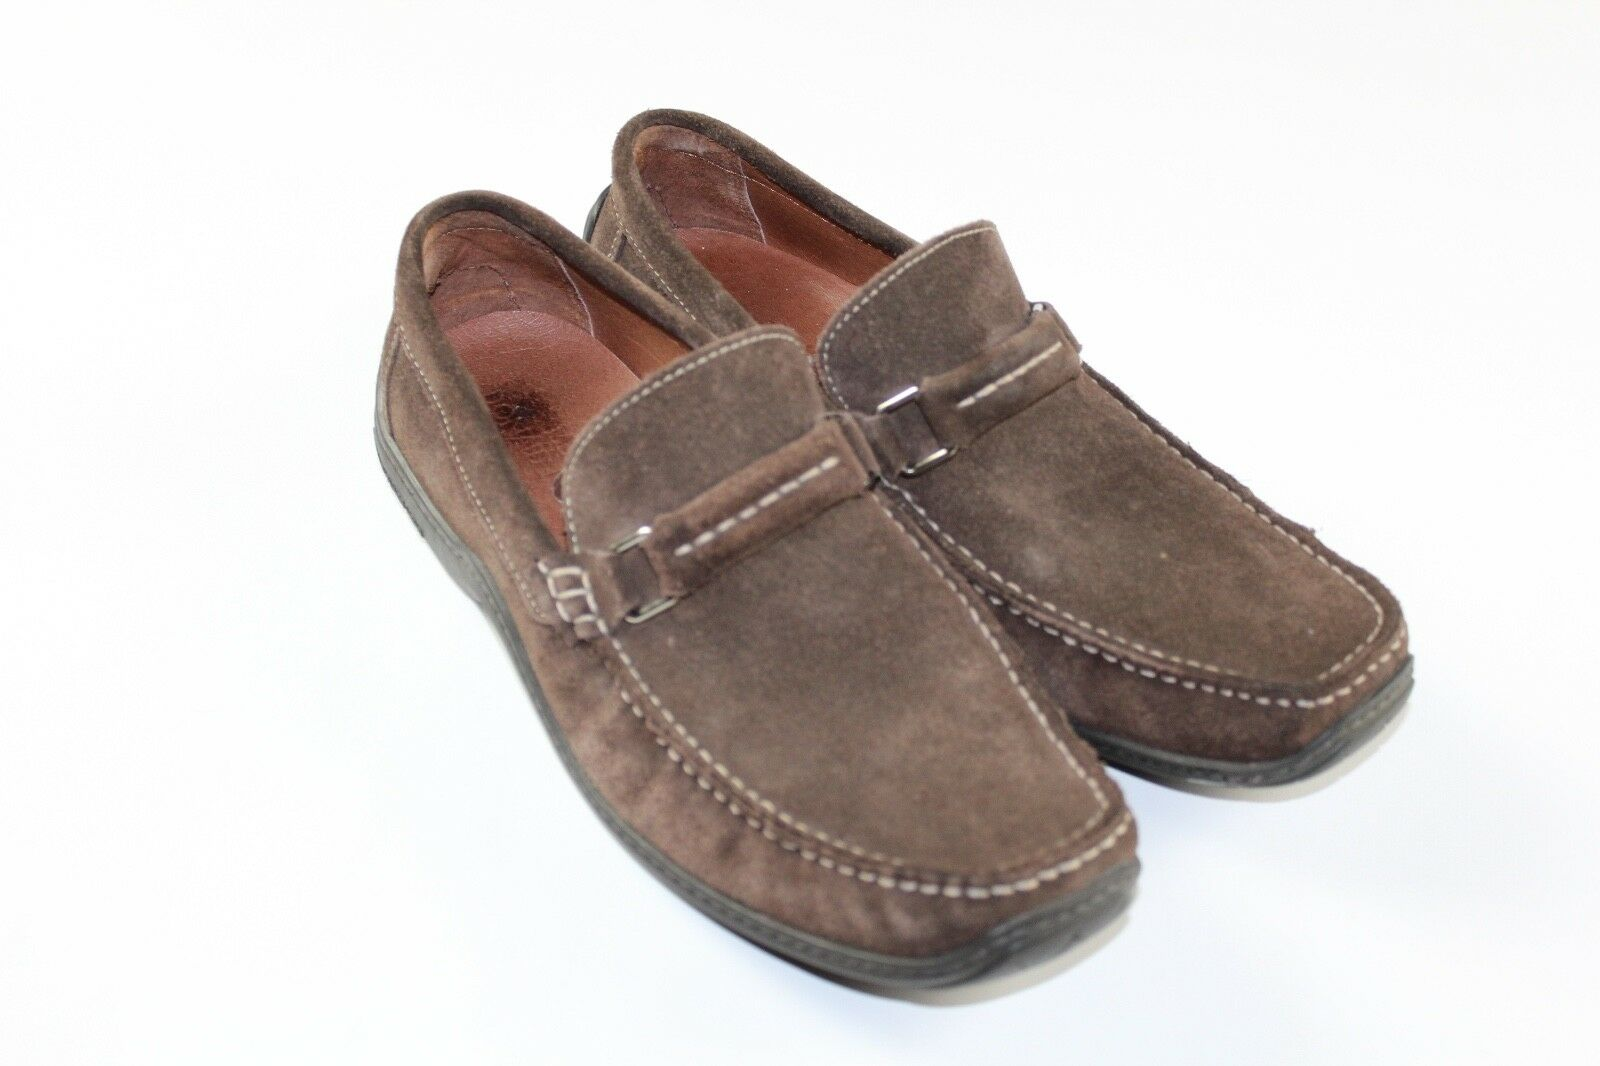 DONALD J PLINER Uomo Size 9 Eincho 23 Suede Slip On Driving Loafers Shoes Brown